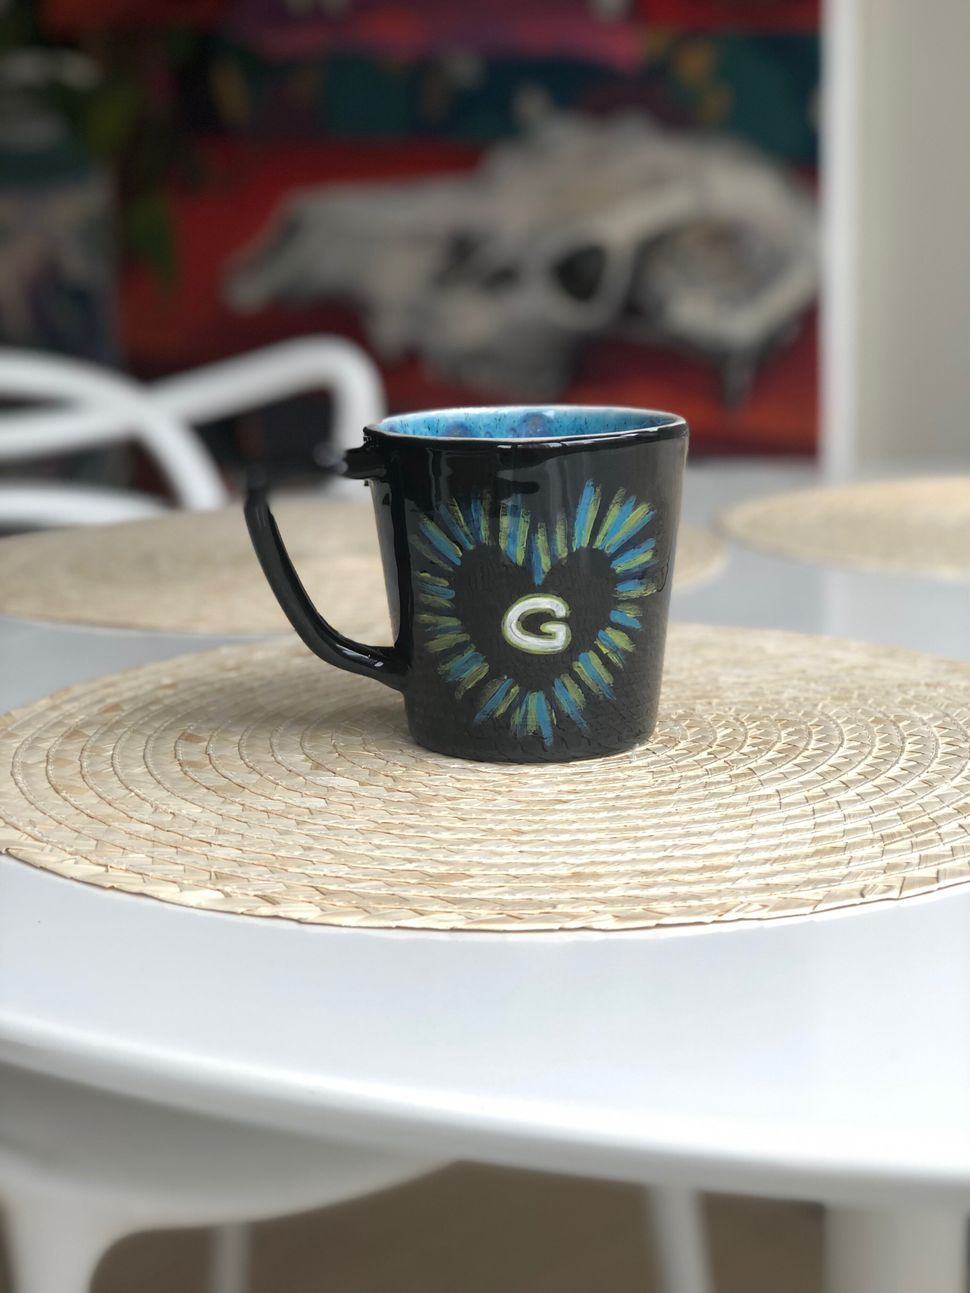 Mark Johnston did not want his photo published, but was proud of this mug he painted for Jessyca Greenwood...